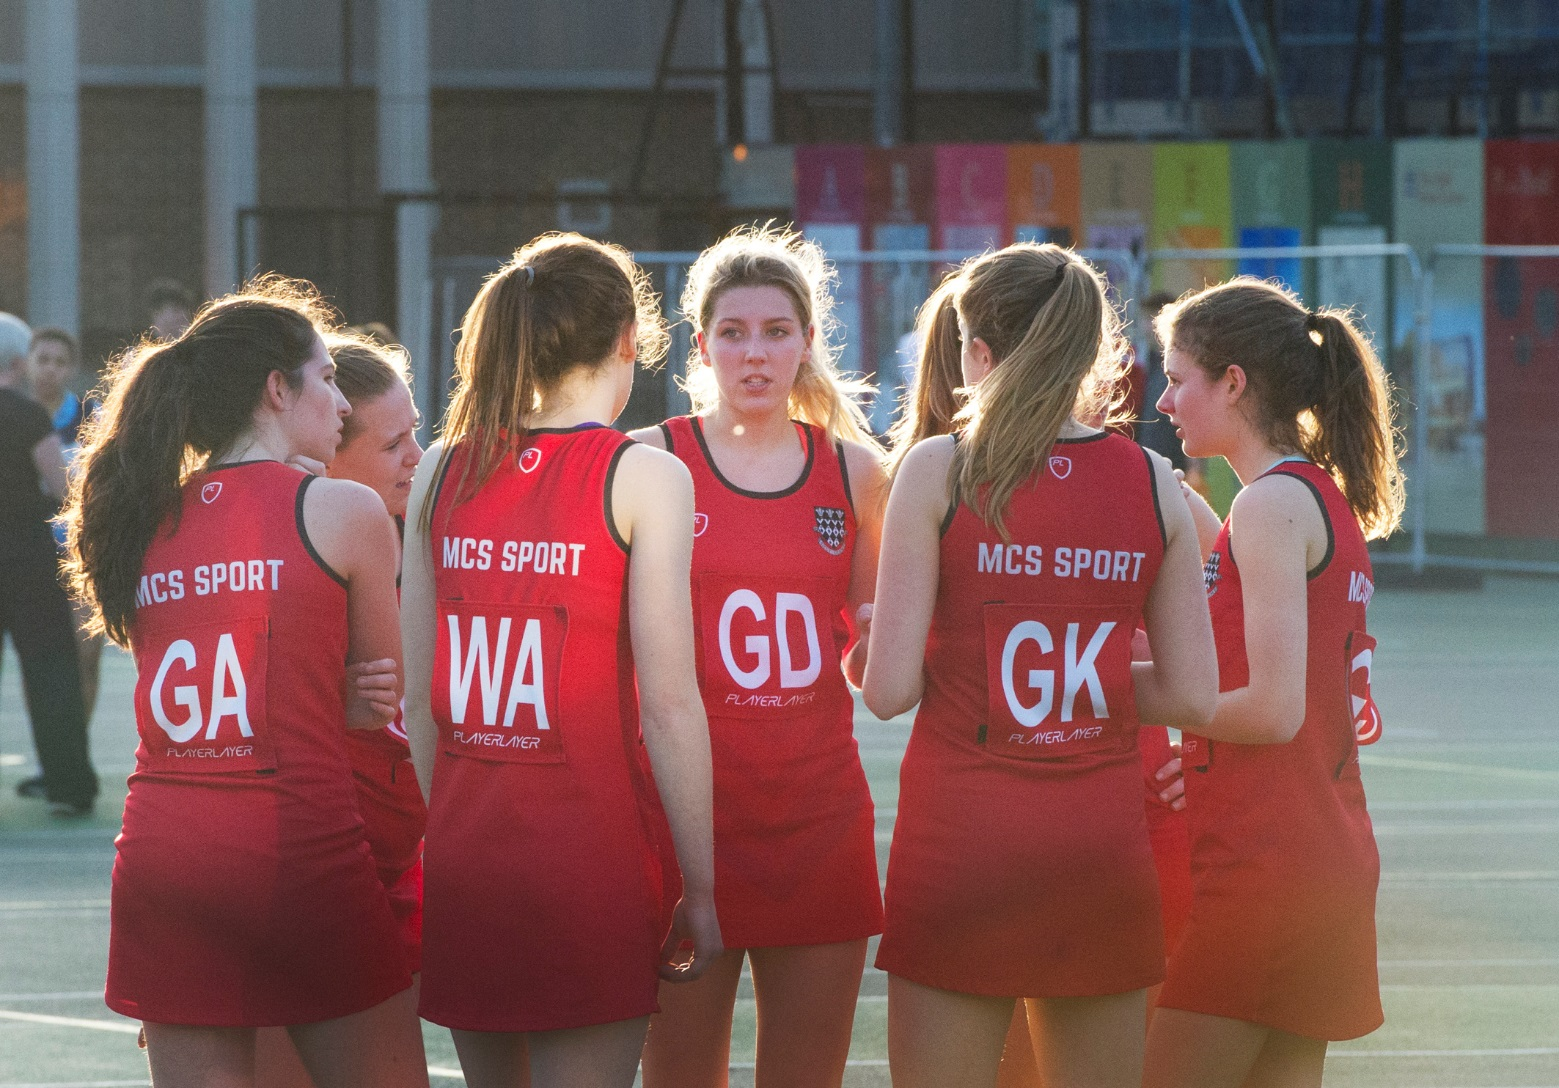 Magdalen College School Sixth Form pupils playing netball